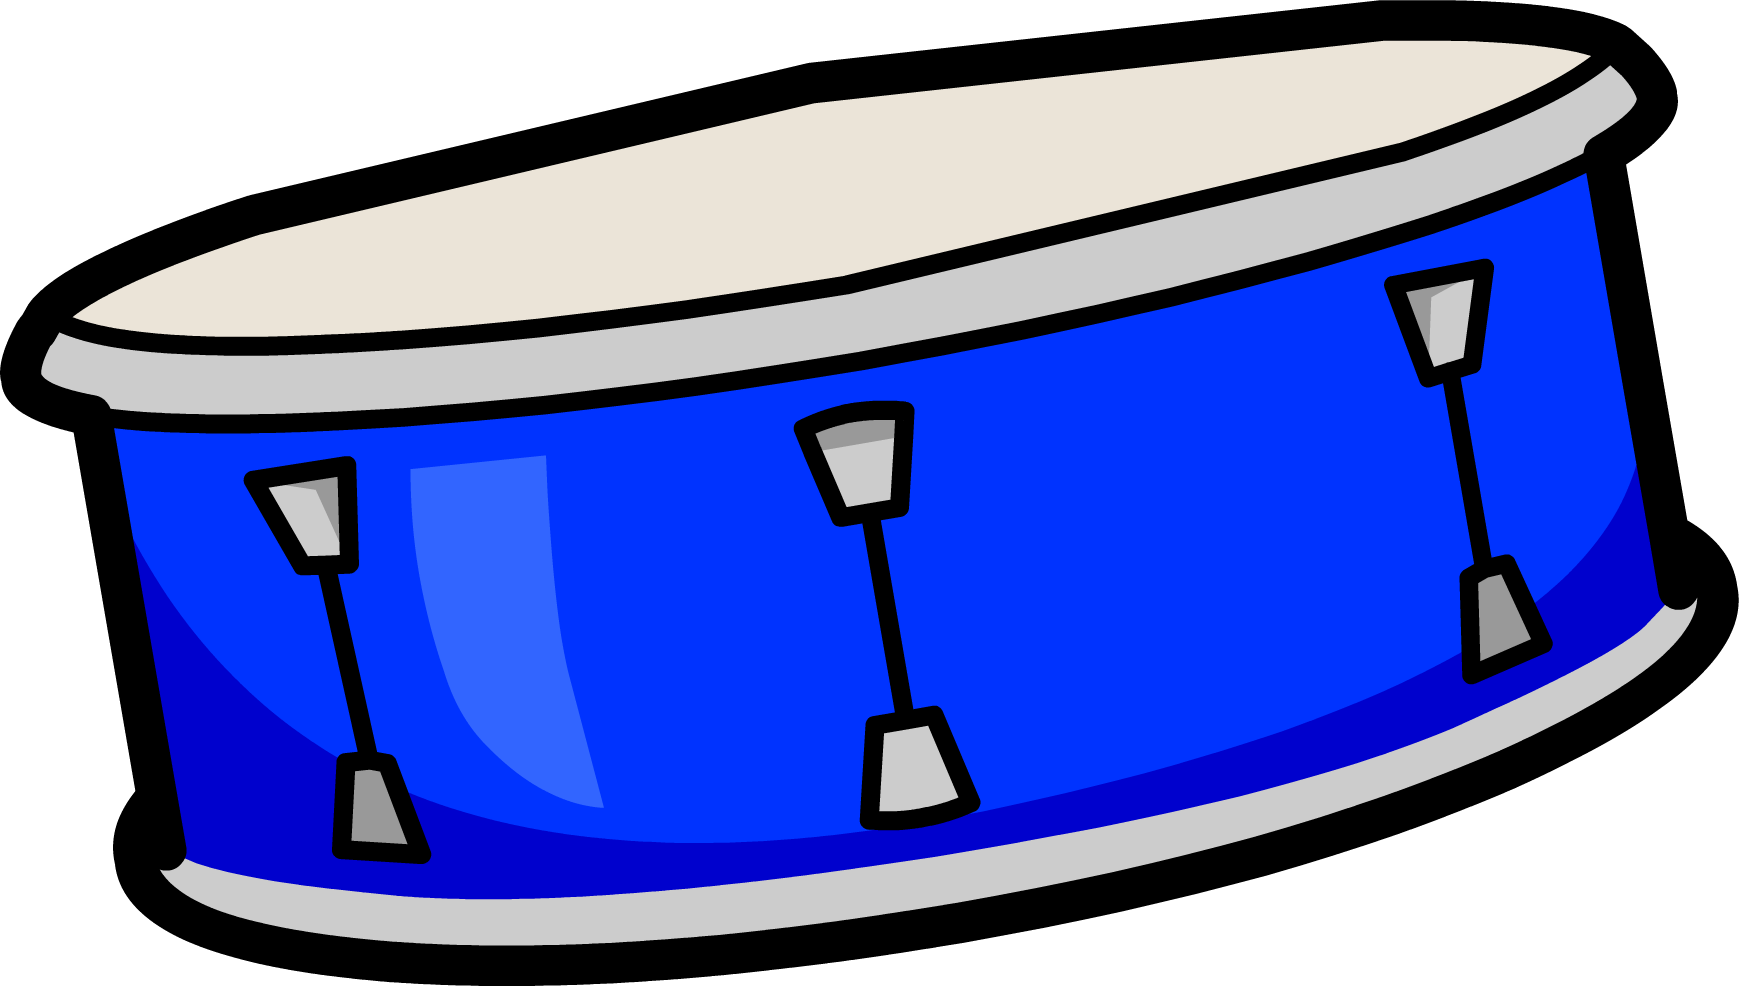 Hands clipart drumming. Blue snare drum club